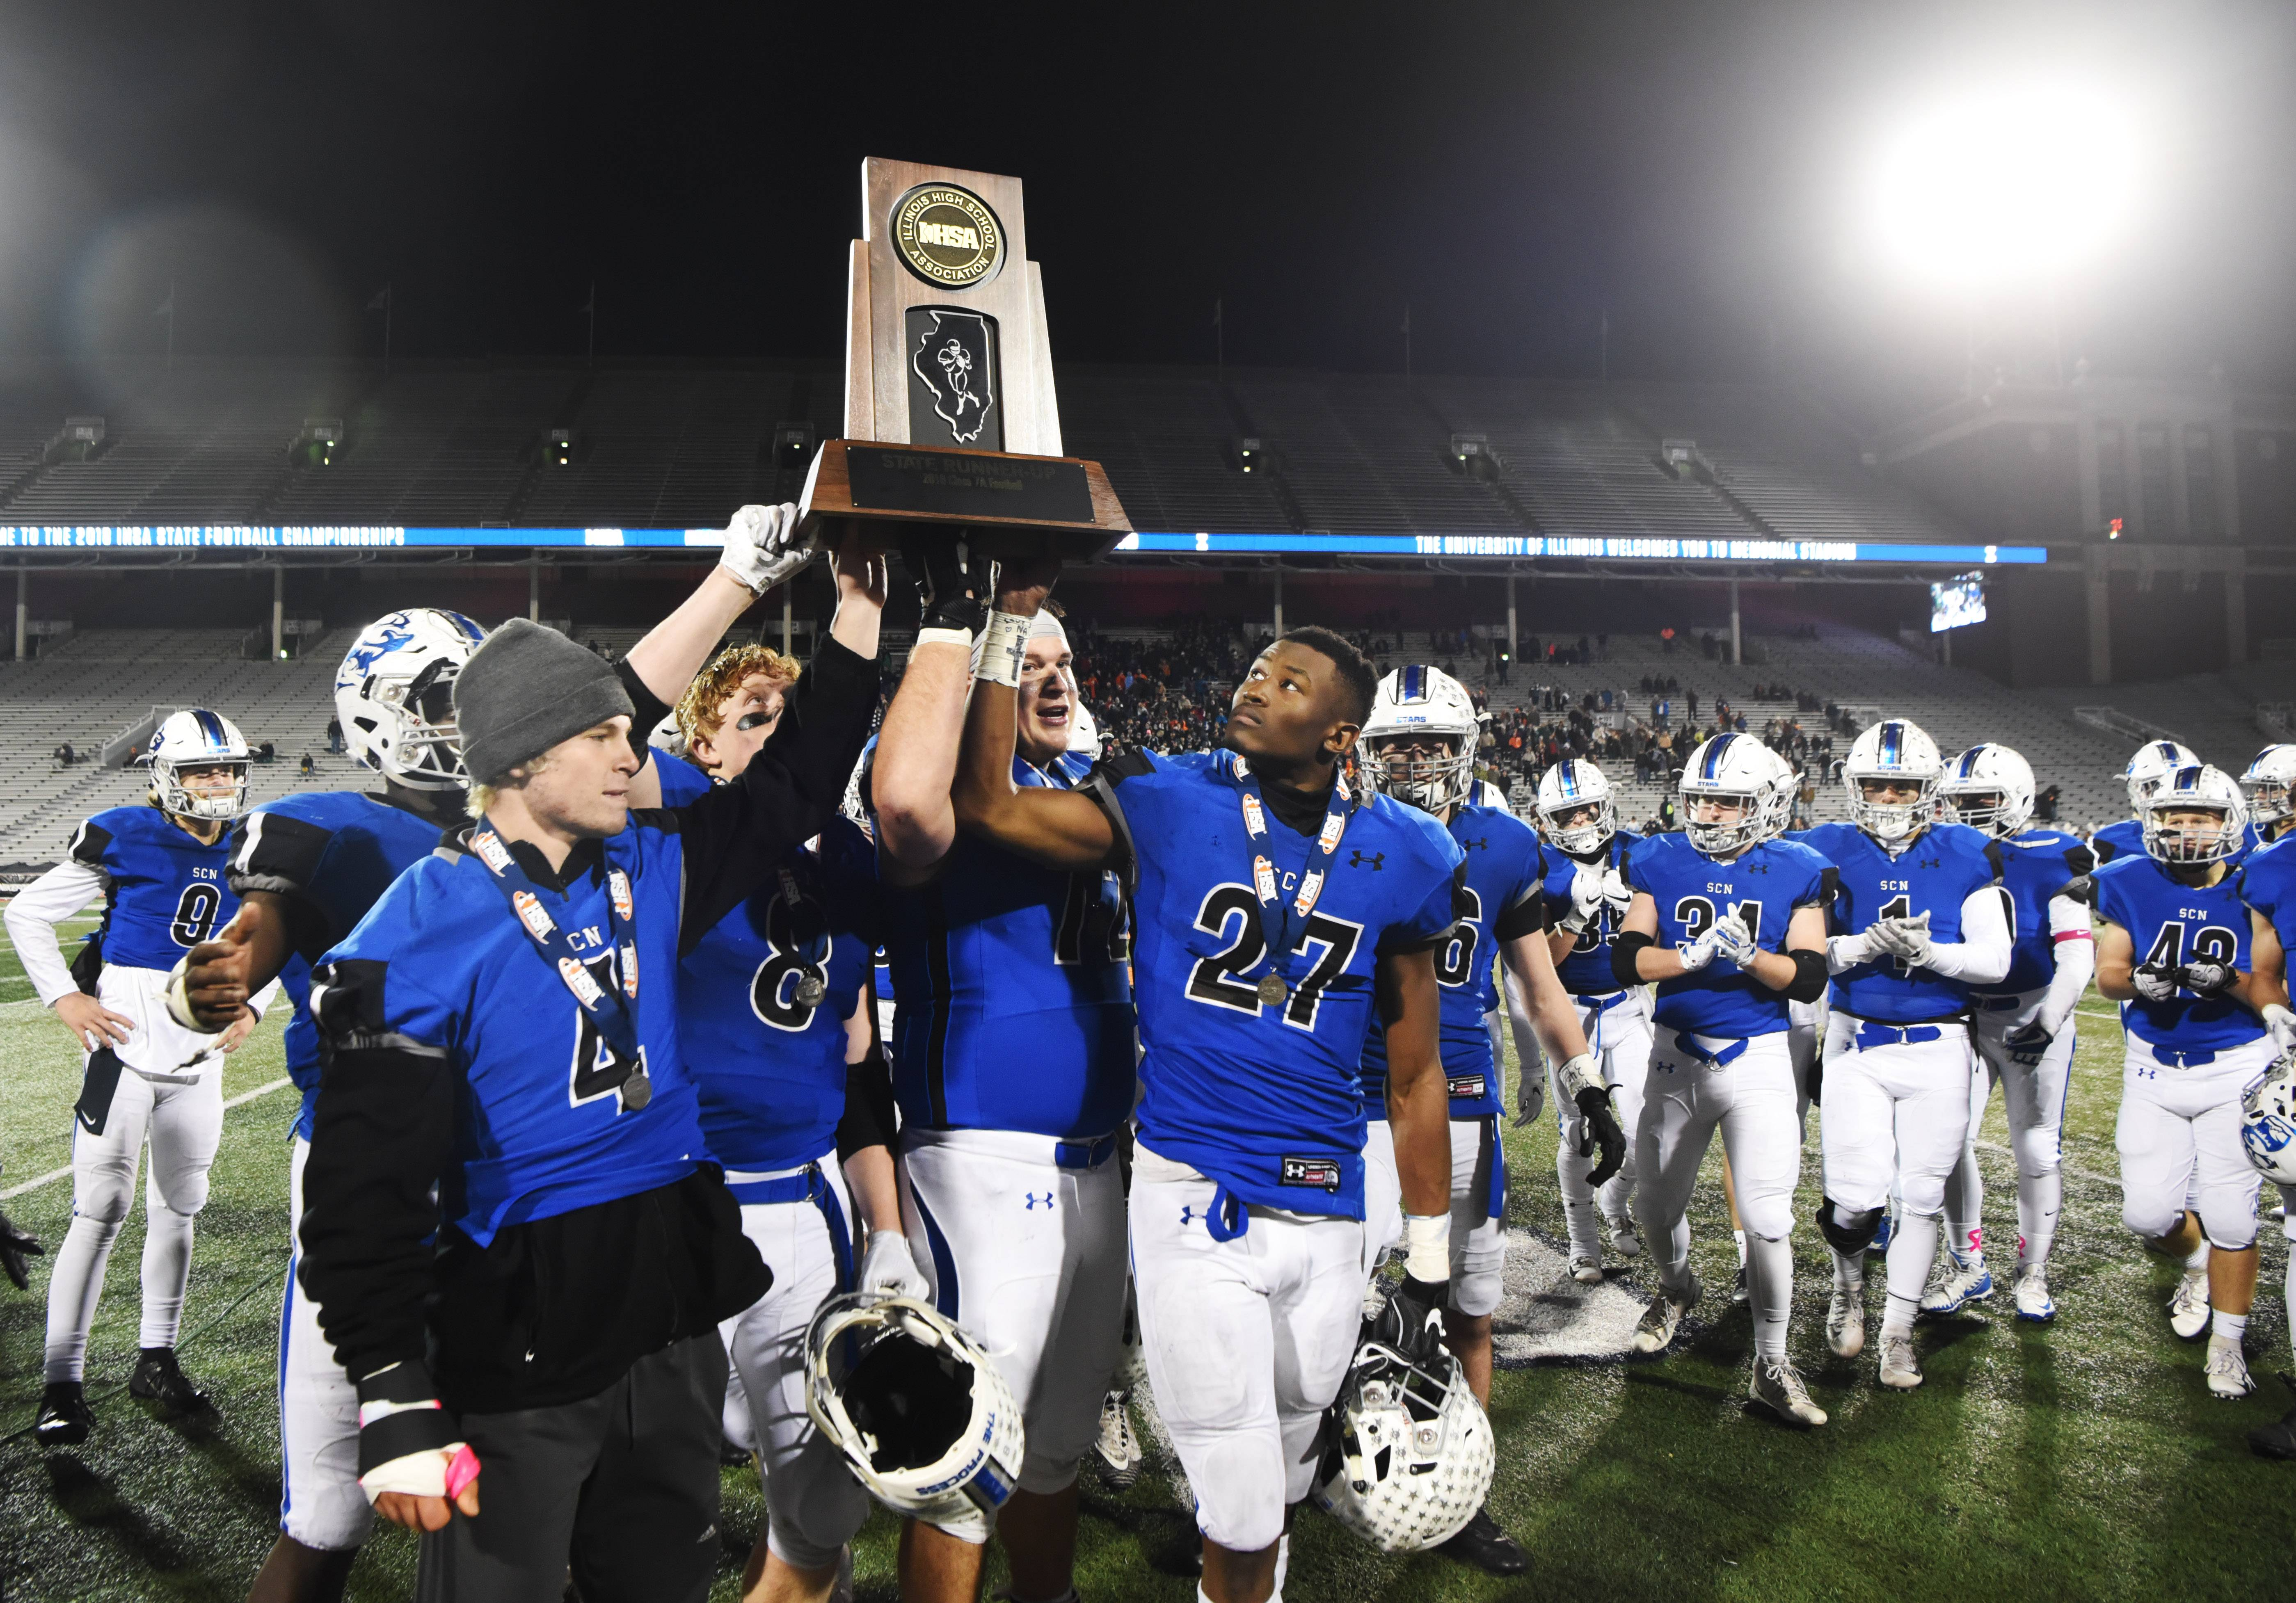 St. Charles North captains Daniel Daley (4), Ben Furtney (8), Alex Westendorf (72) and Tyler Nubin (27) hold the second-place trophy following their loss to Nazareth during the Class 7A state football championship at Memorial Stadium in Champaign Saturday.